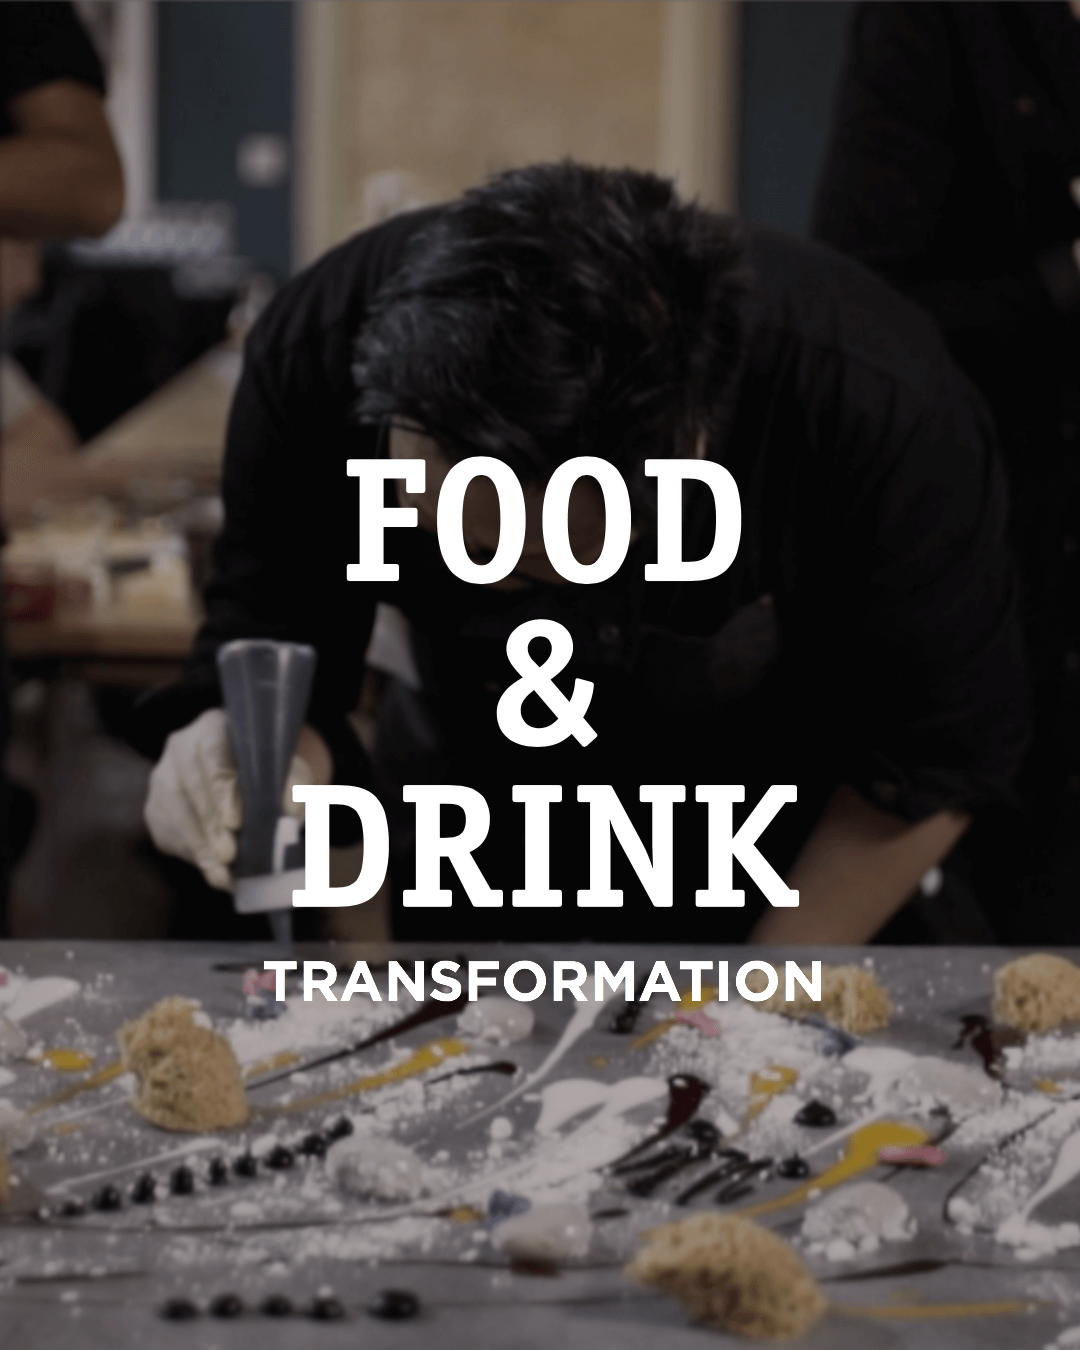 Food & Drink Transformation